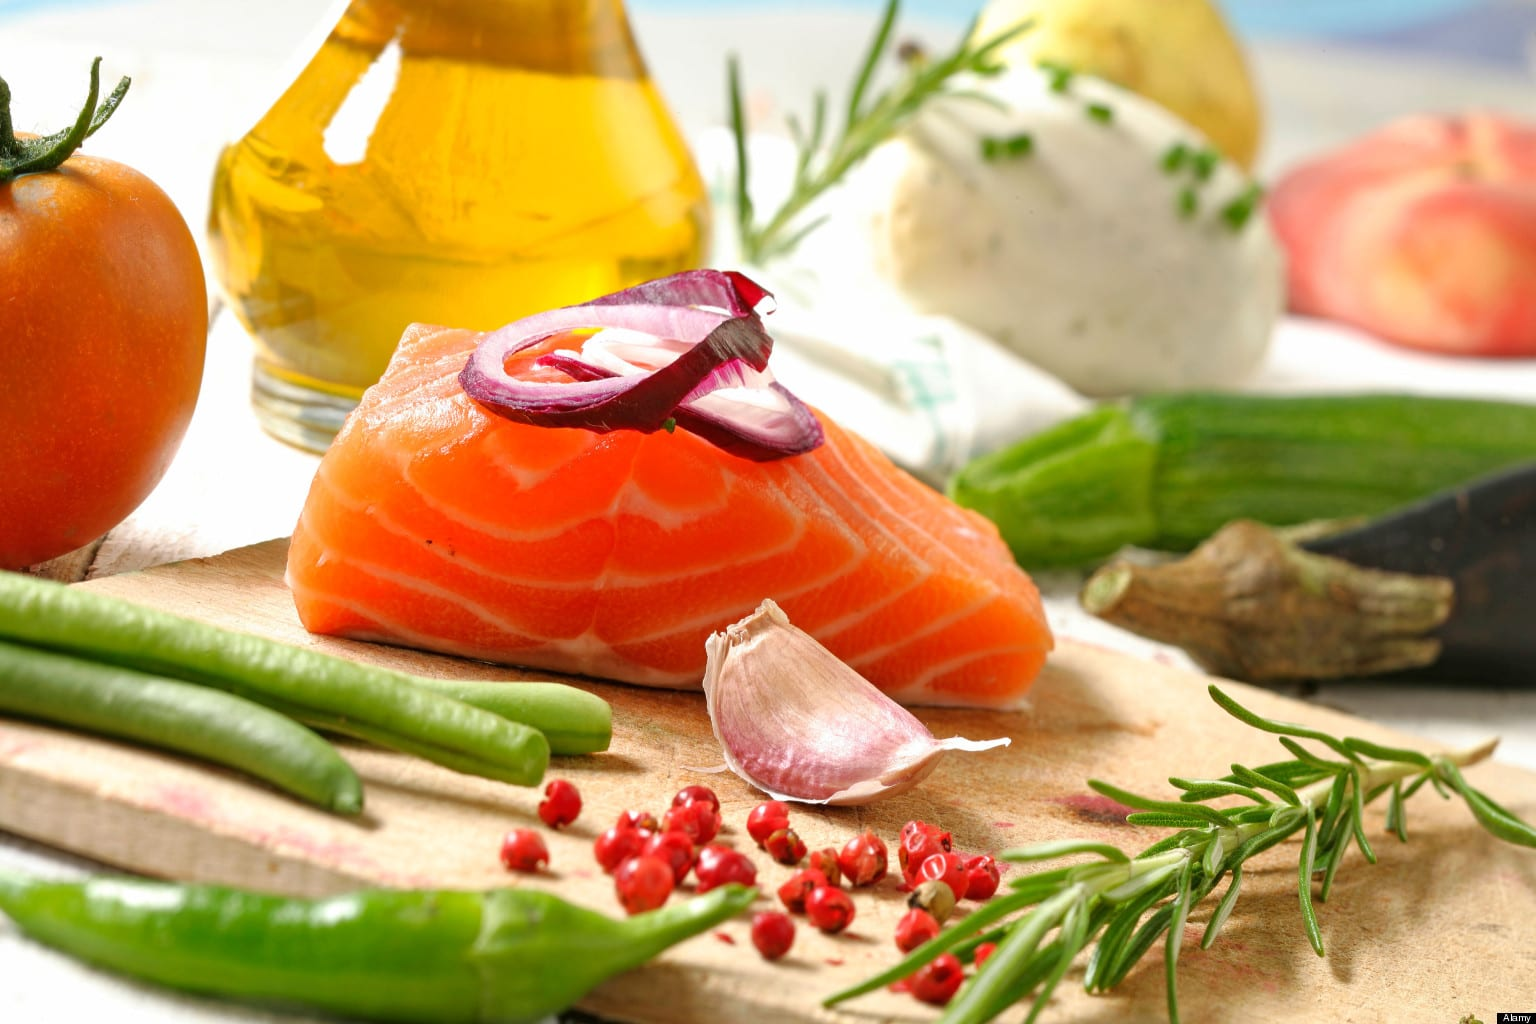 Mediterranean Style Diet Increases Abdominal Body Fat The Least